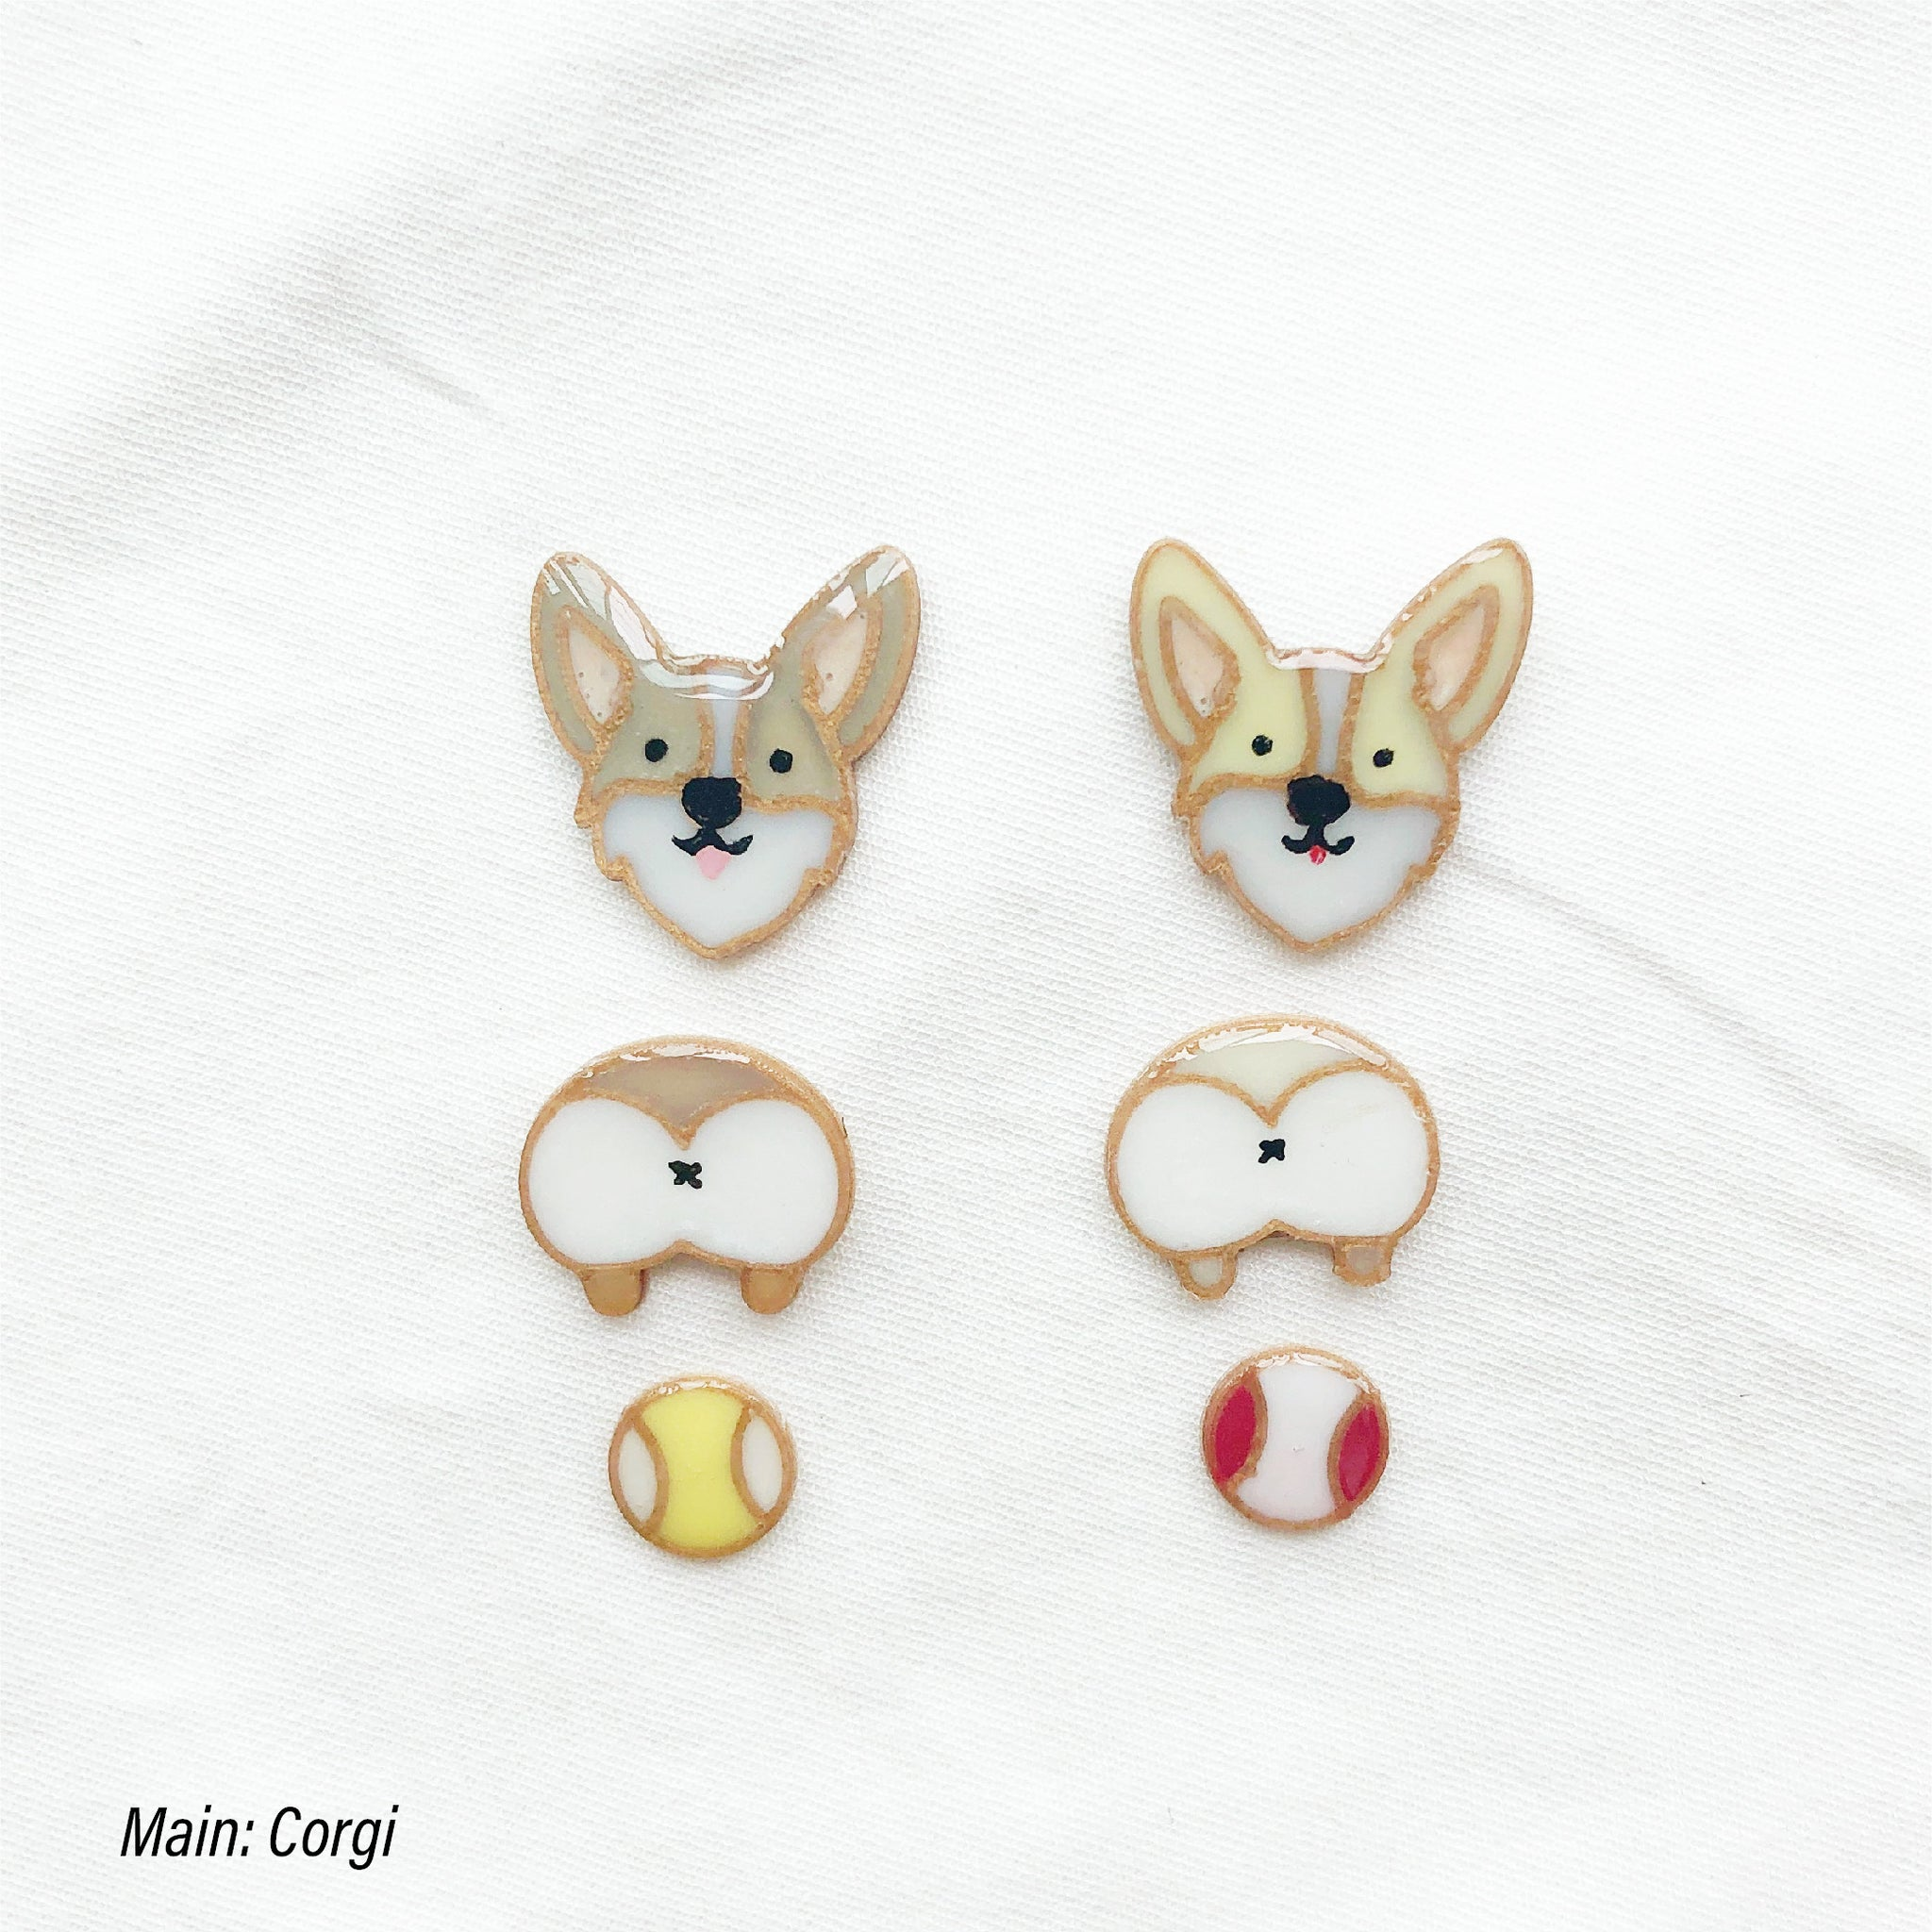 Corgi custom three tiers earrings